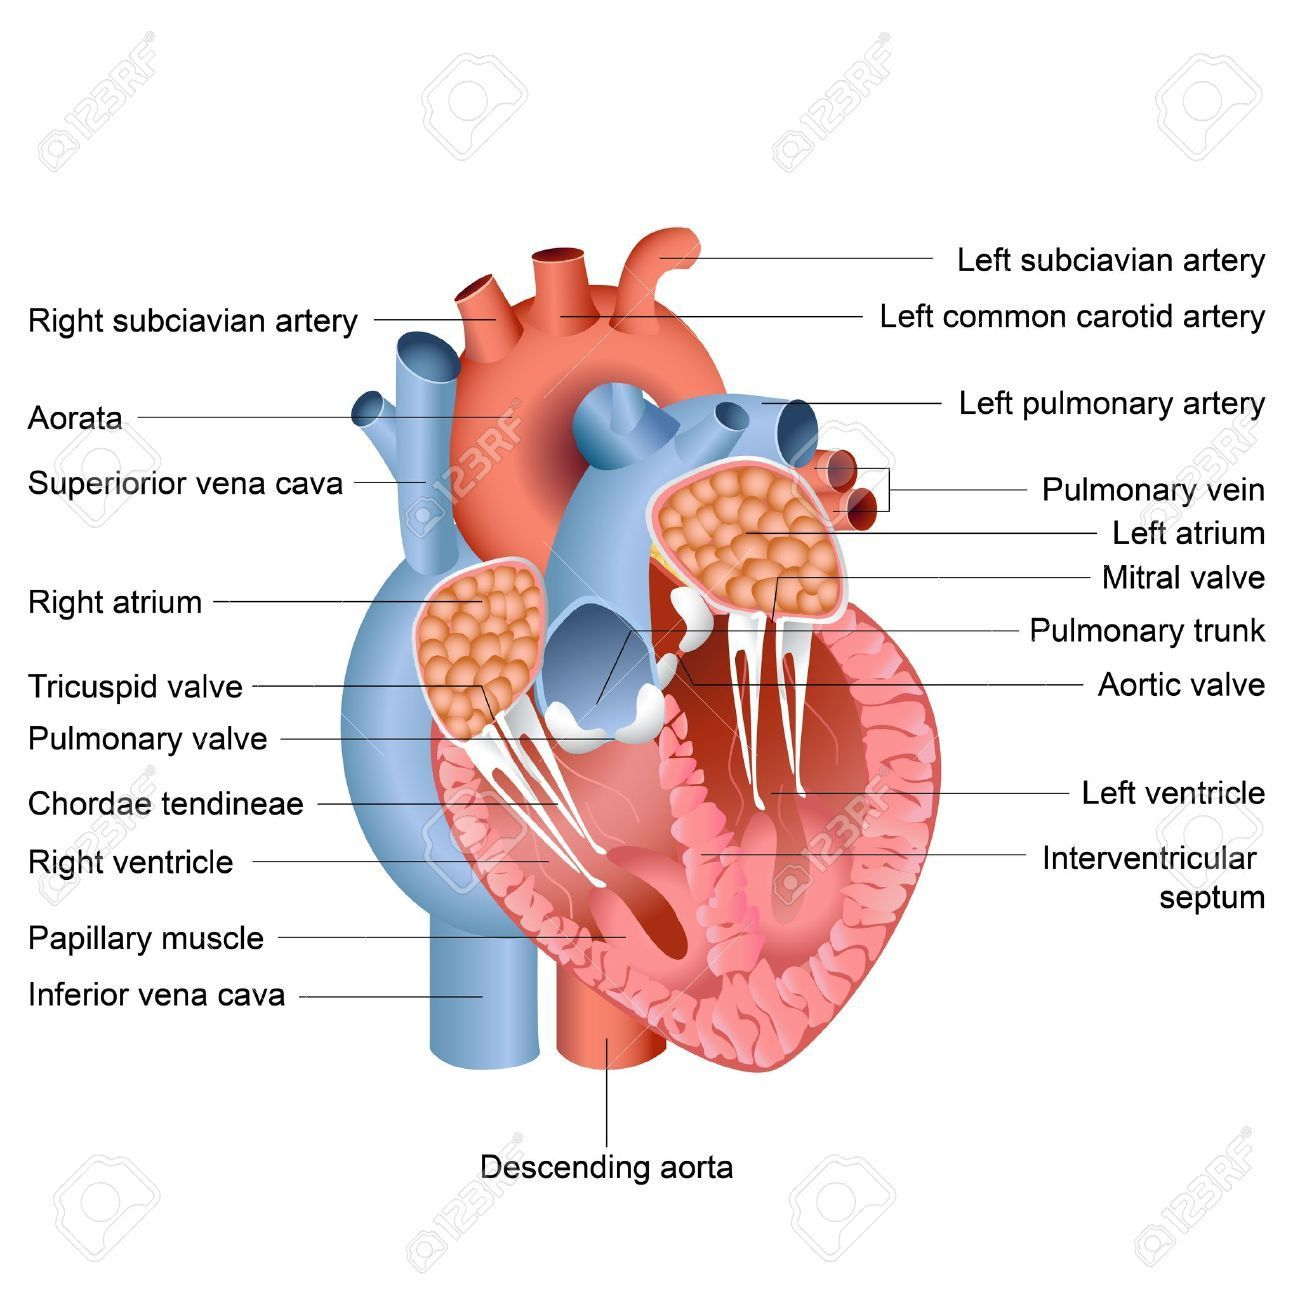 hight resolution of human heart labeled human heart labeled simple human lungs andhuman heart labeled human heart labeled simple